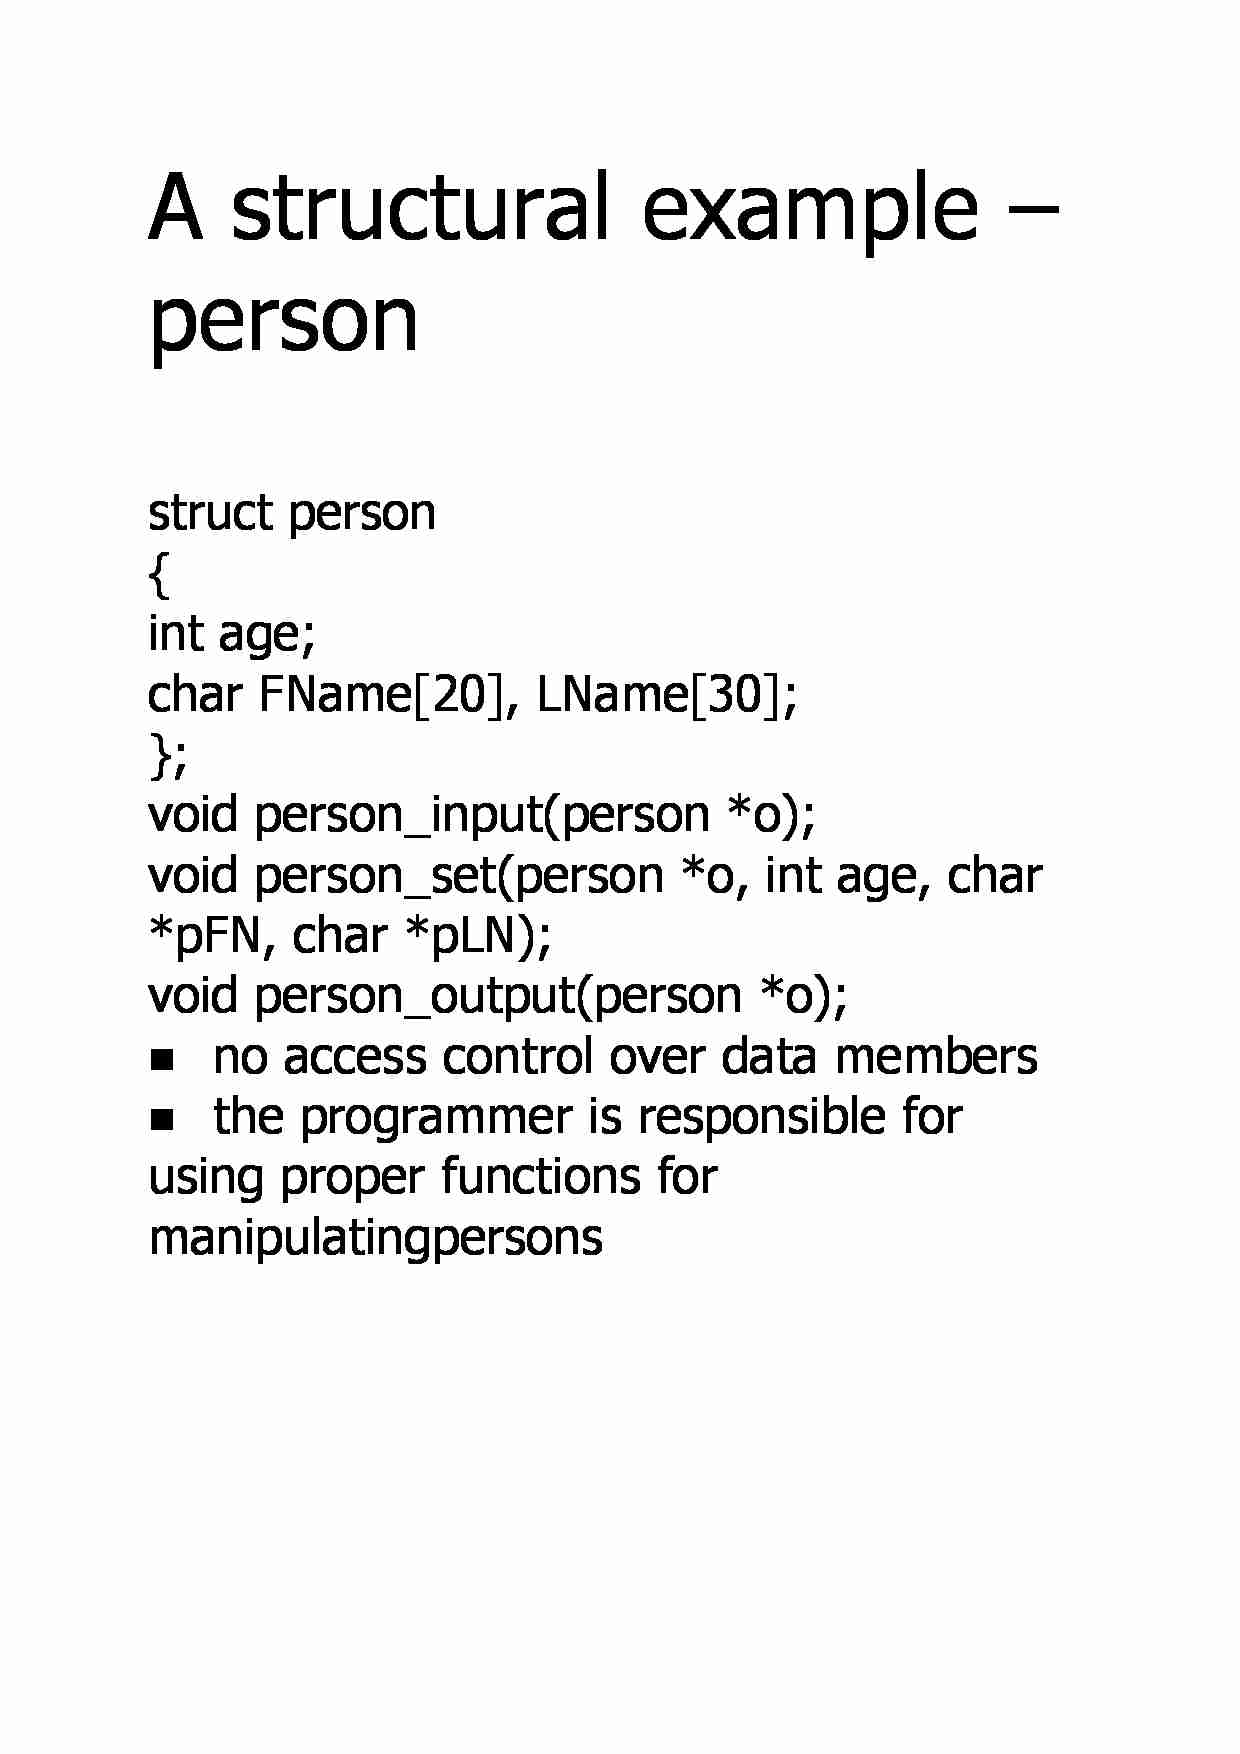 A structural example _ person - strona 1